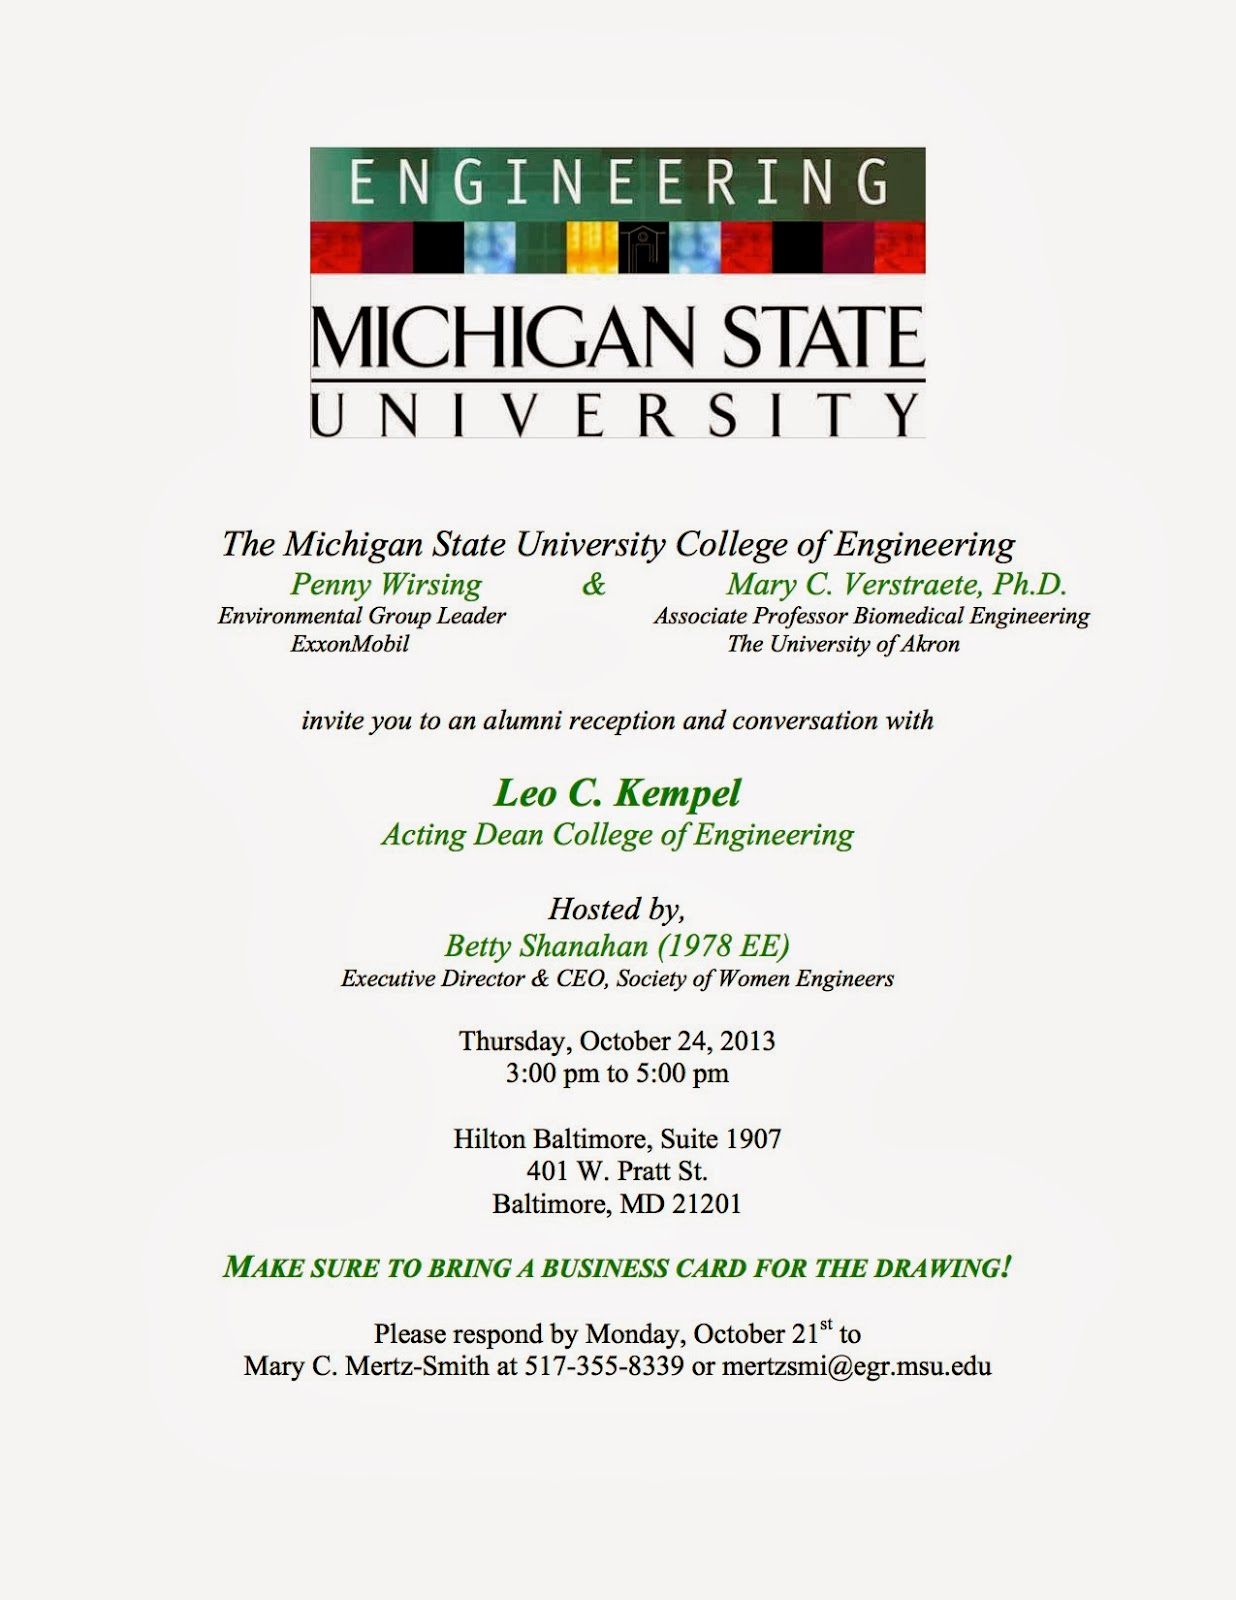 Msu business cards images free business cards professor business card images free business cards msu business cards choice image free business cards swe magicingreecefo Choice Image